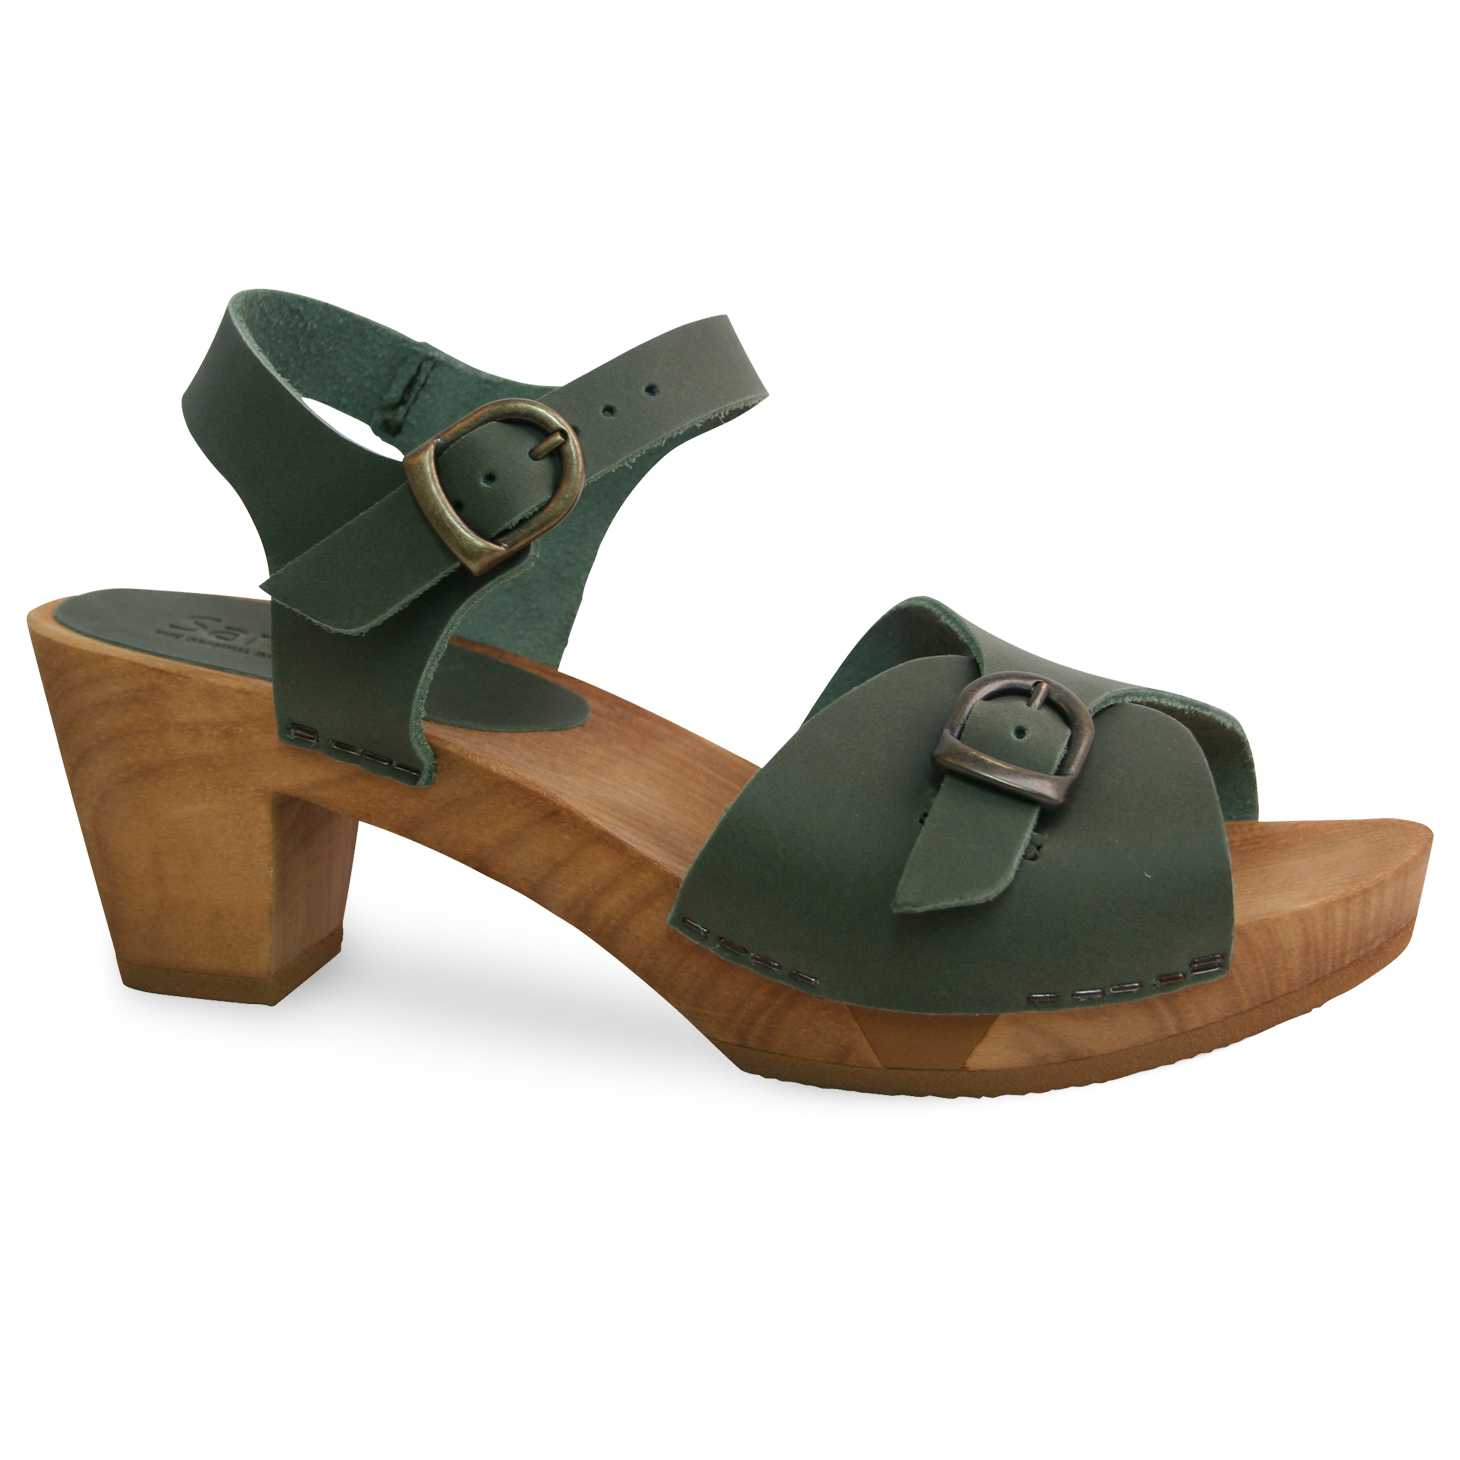 Sanita Tiana Women's in Khaki Sandal